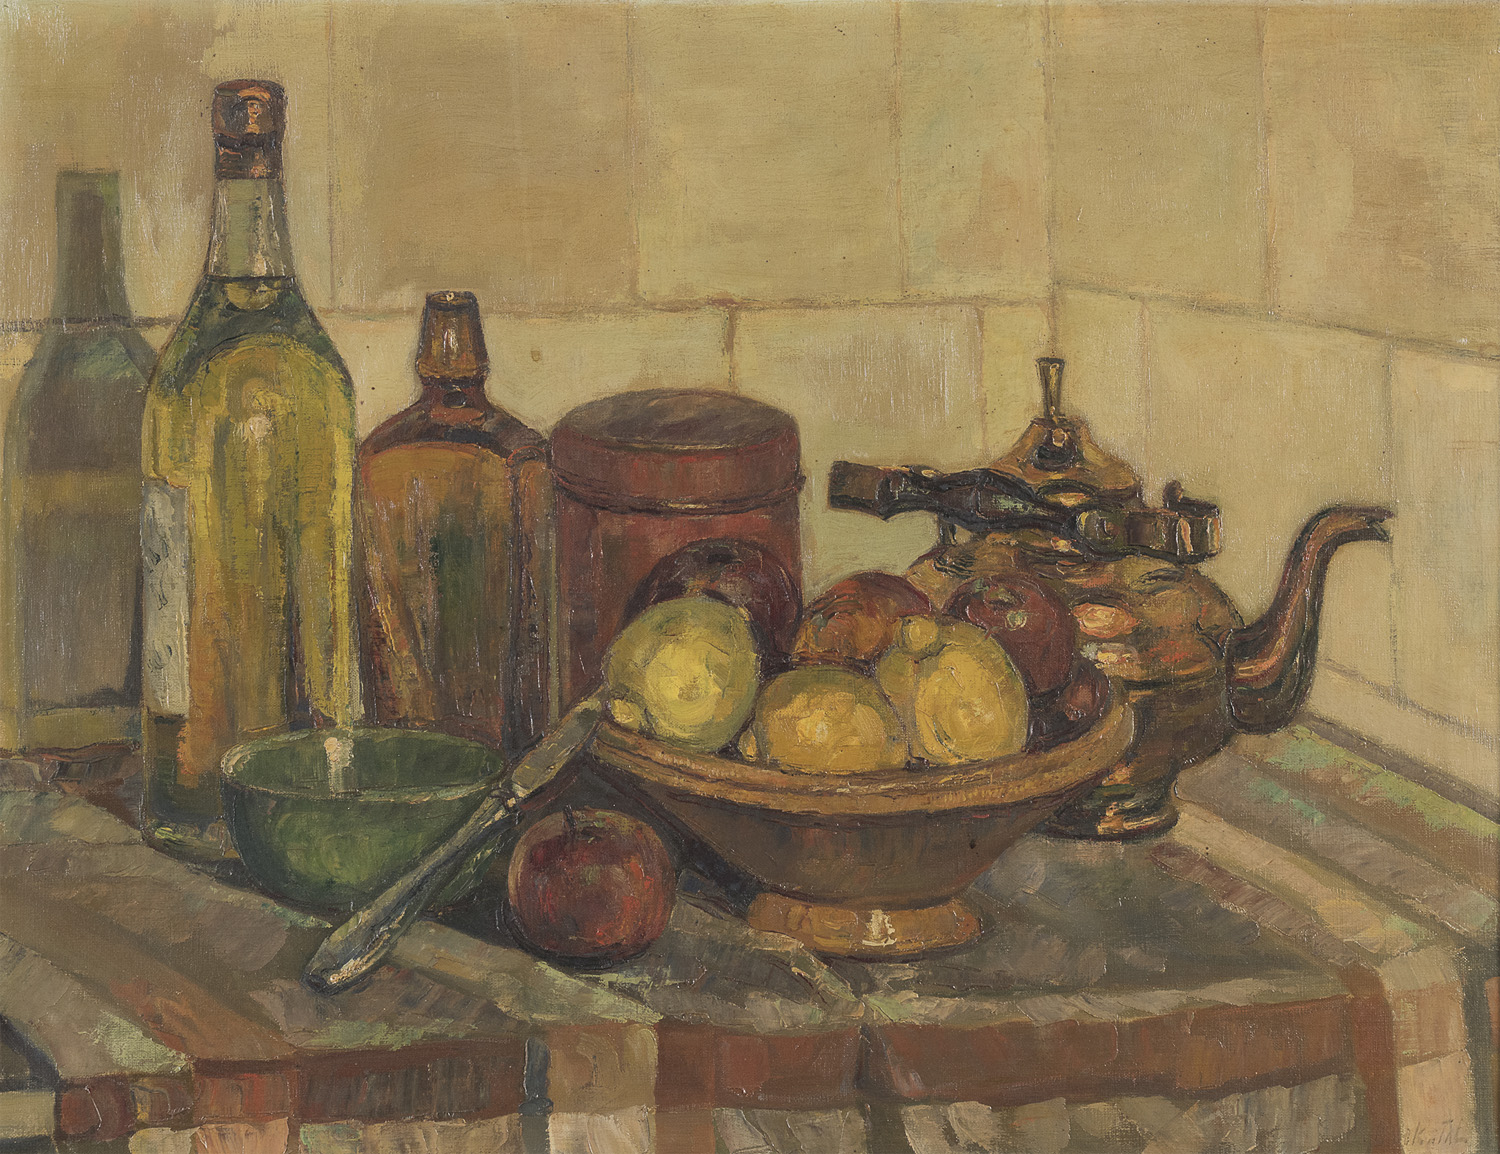 OIL STILL LIFE BY RUSSIAN PAINTER 20TH CENTURY